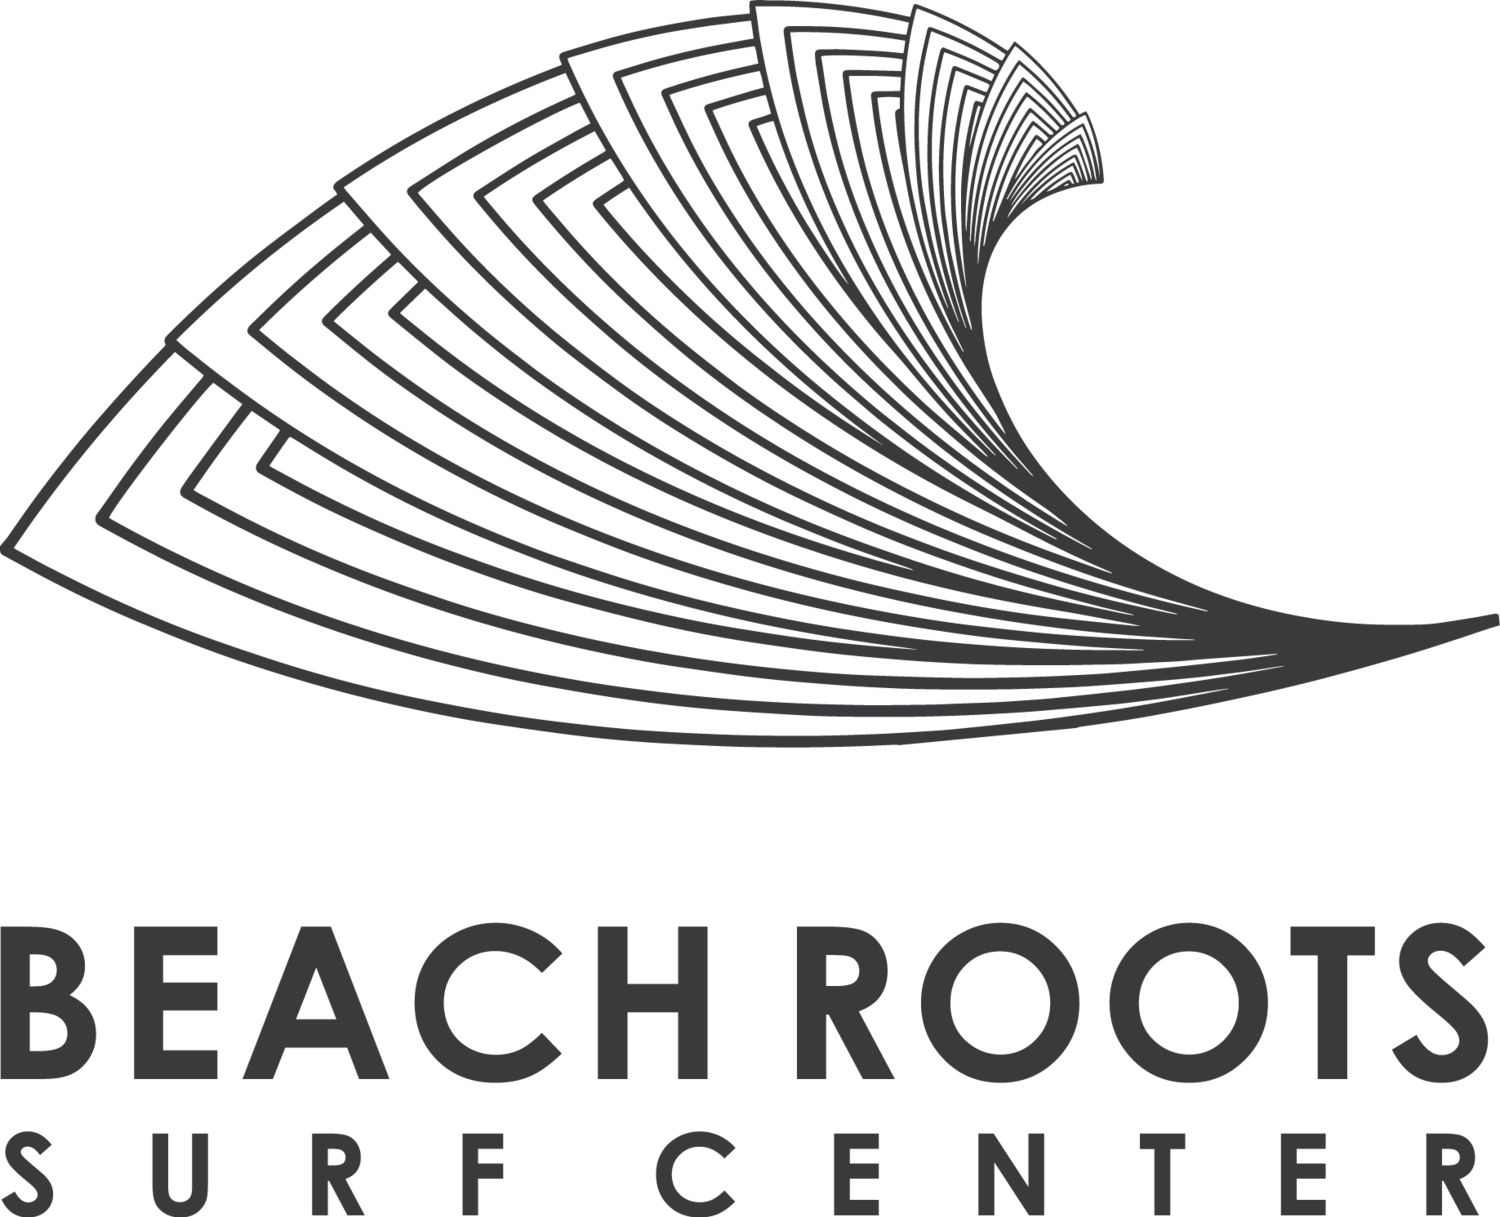 BEACH ROOTS SURF CENTER